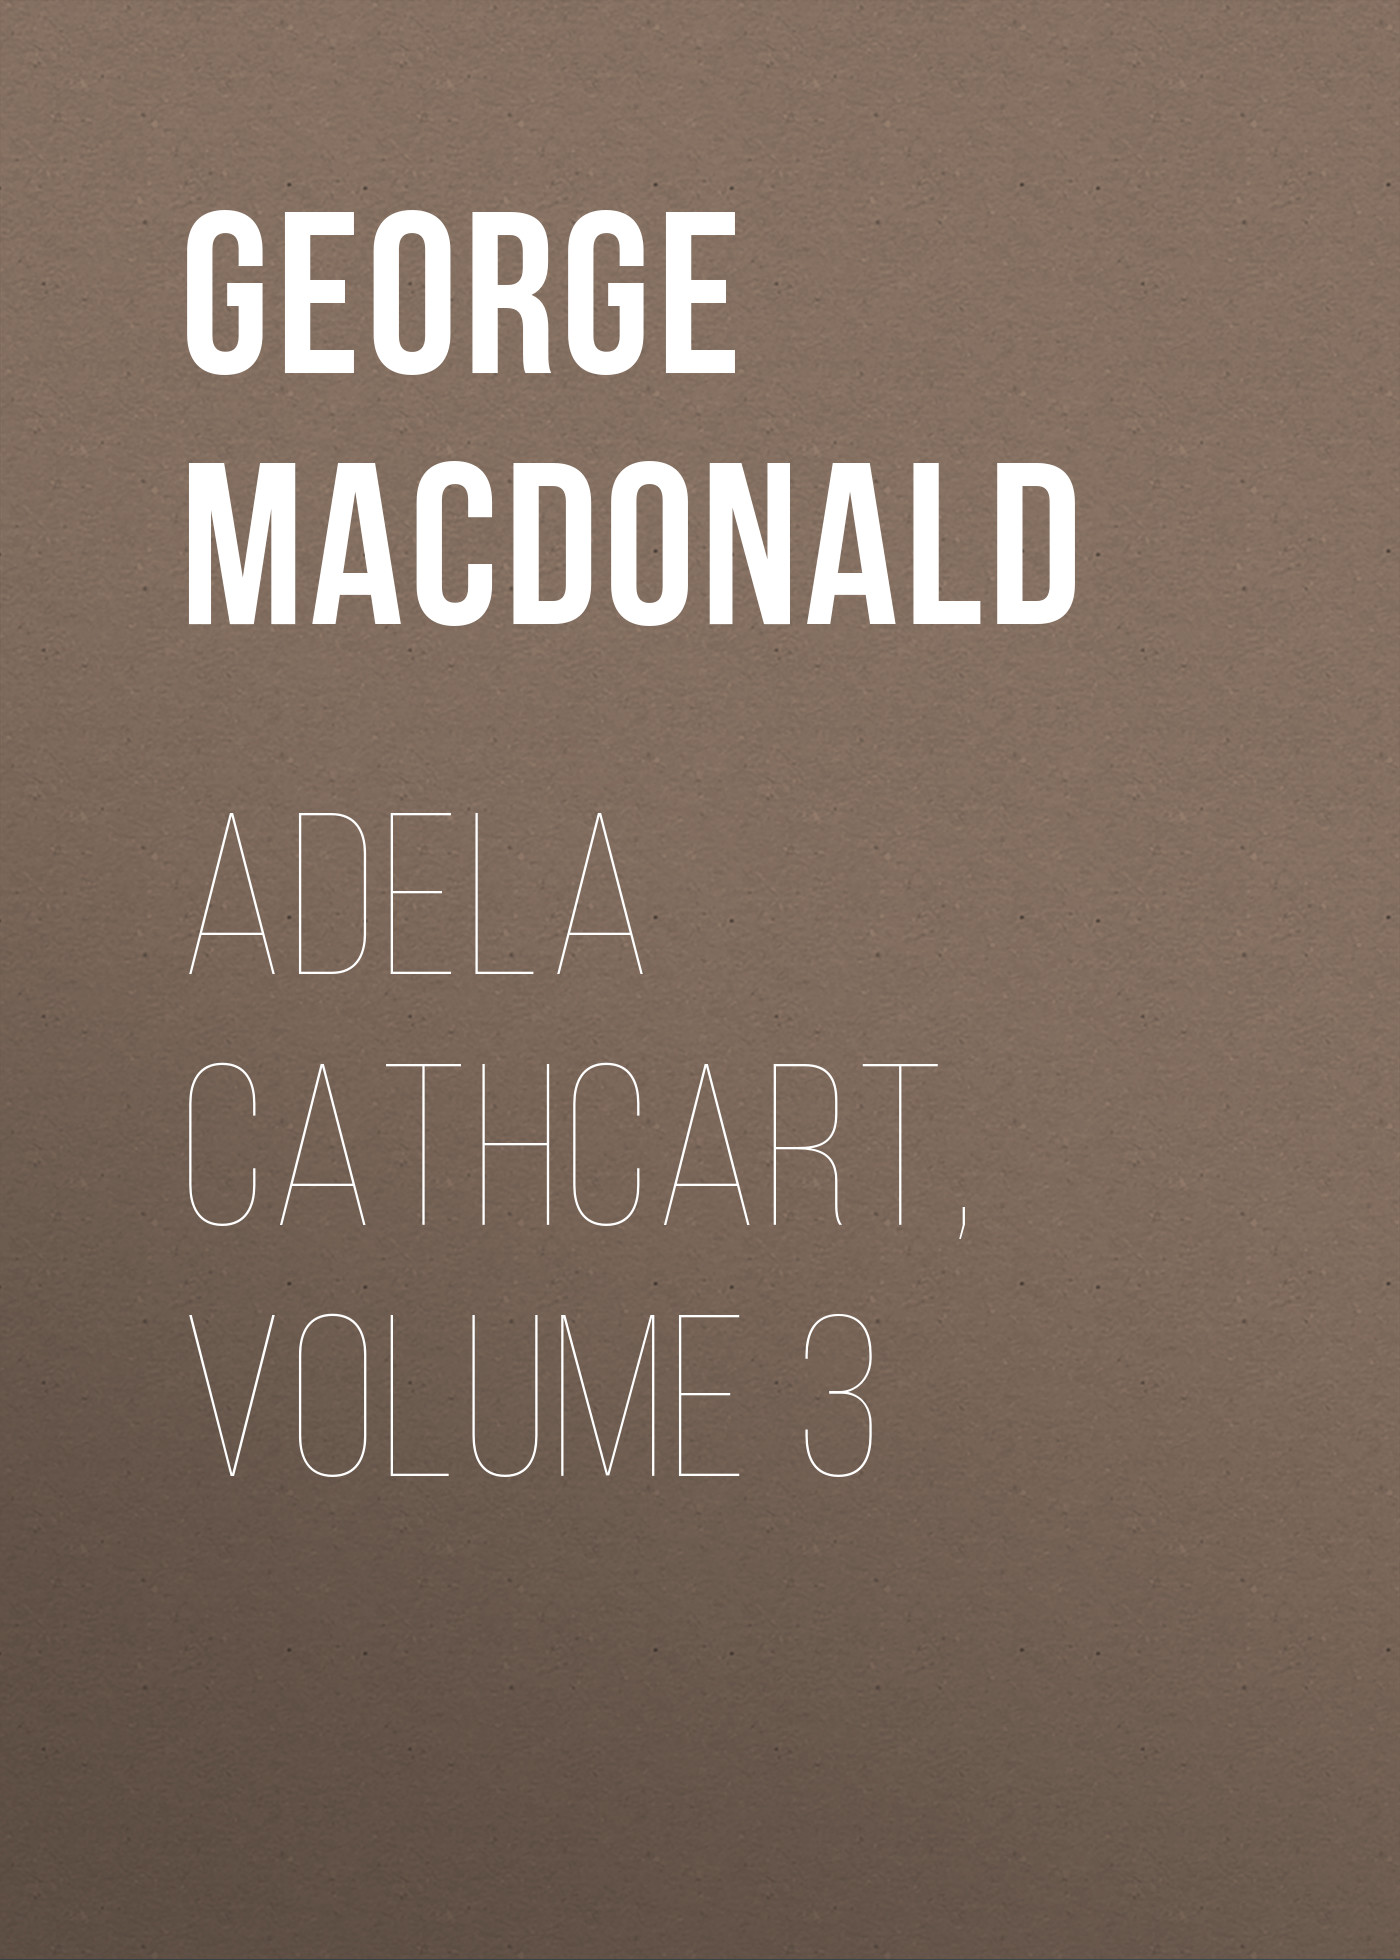 George MacDonald Adela Cathcart, Volume 3 george macdonald the seaboard parish volume 1